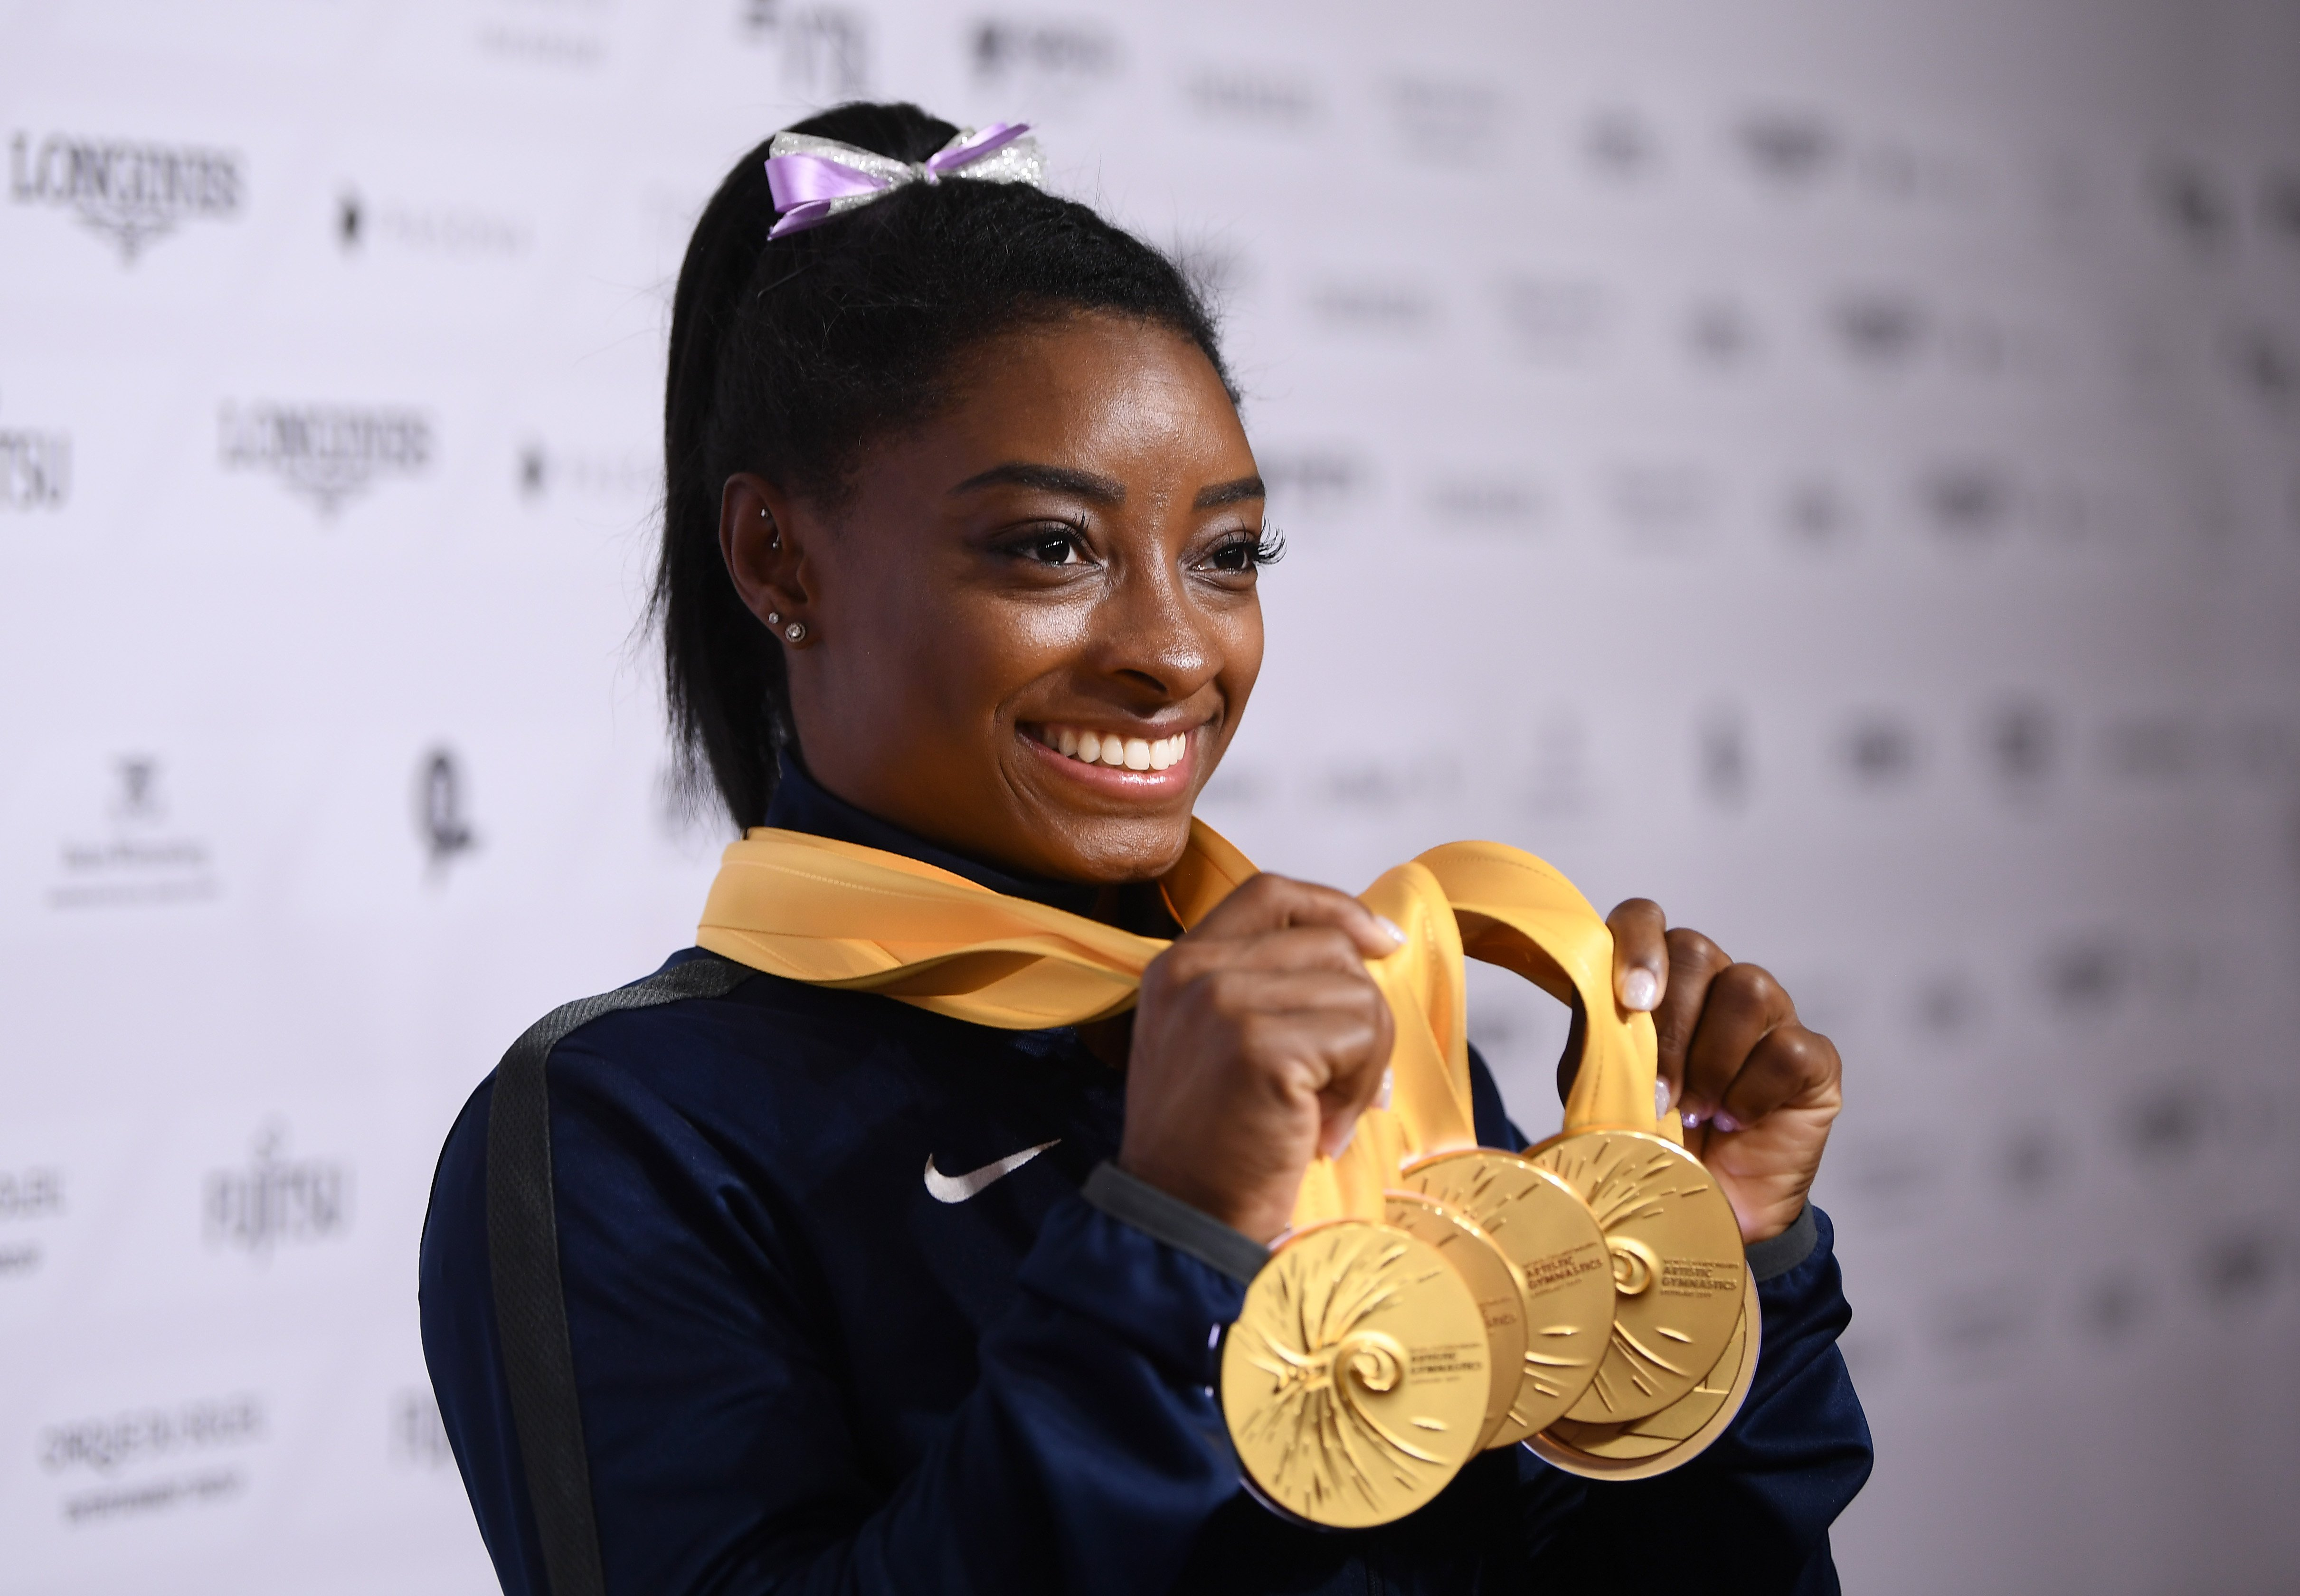 Simone Biles poses with her medals at the the FIG Artistic Gymnastics World Championships on October 13, 2019 in Stuttgart, Germany. | Source: Getty Images